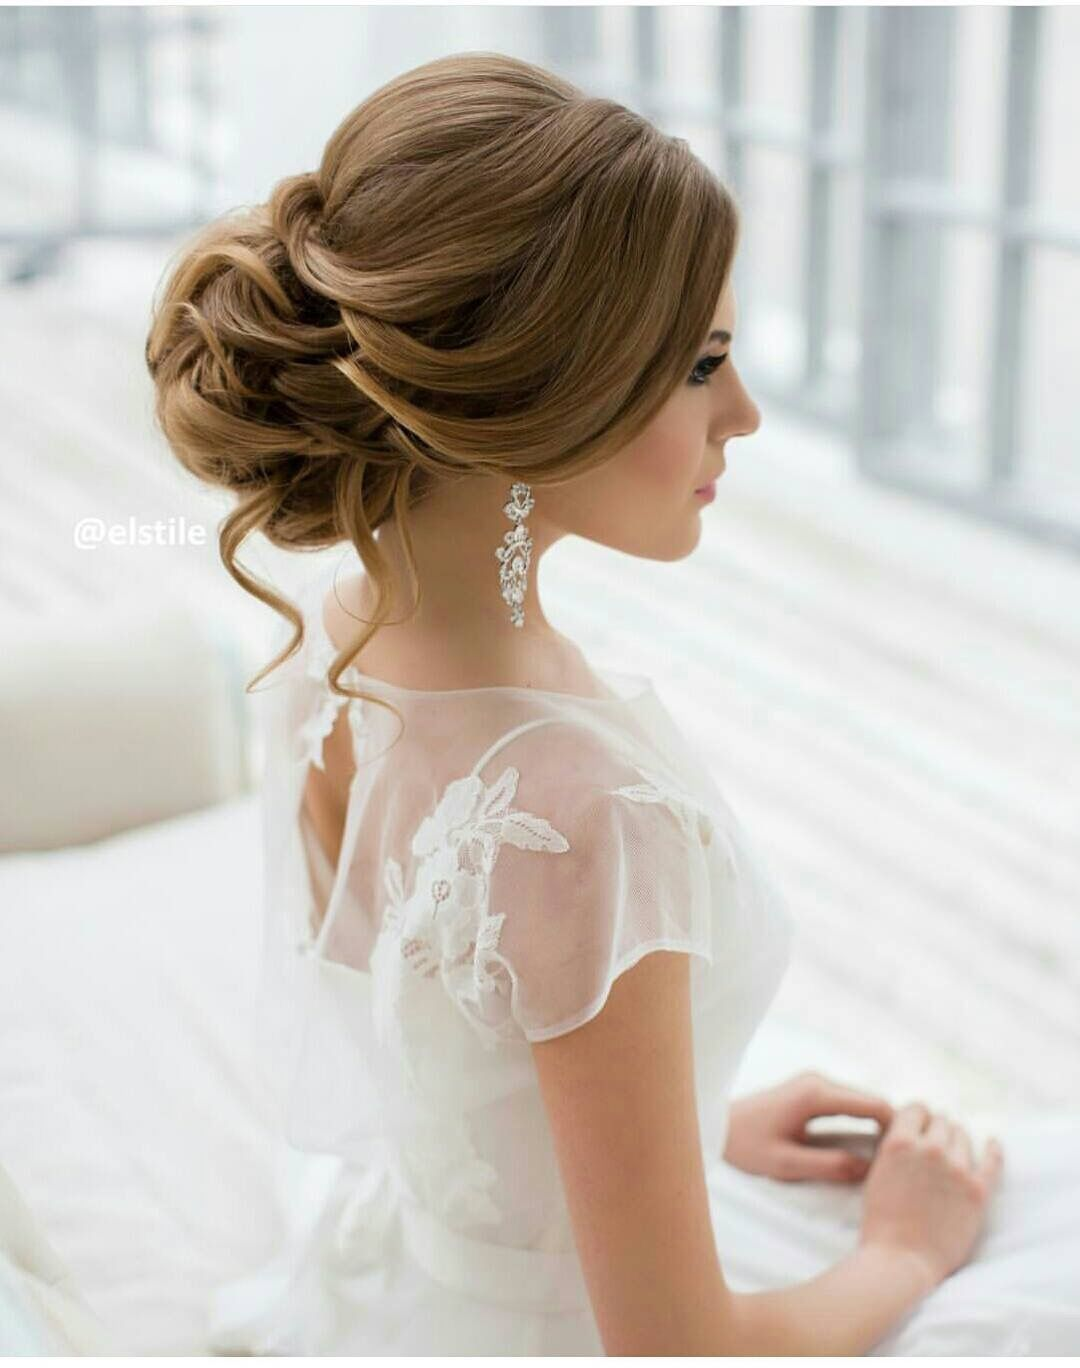 Pin by Eunise Gomez on Hair | Pinterest | Hairstyles, Wedding and Hair